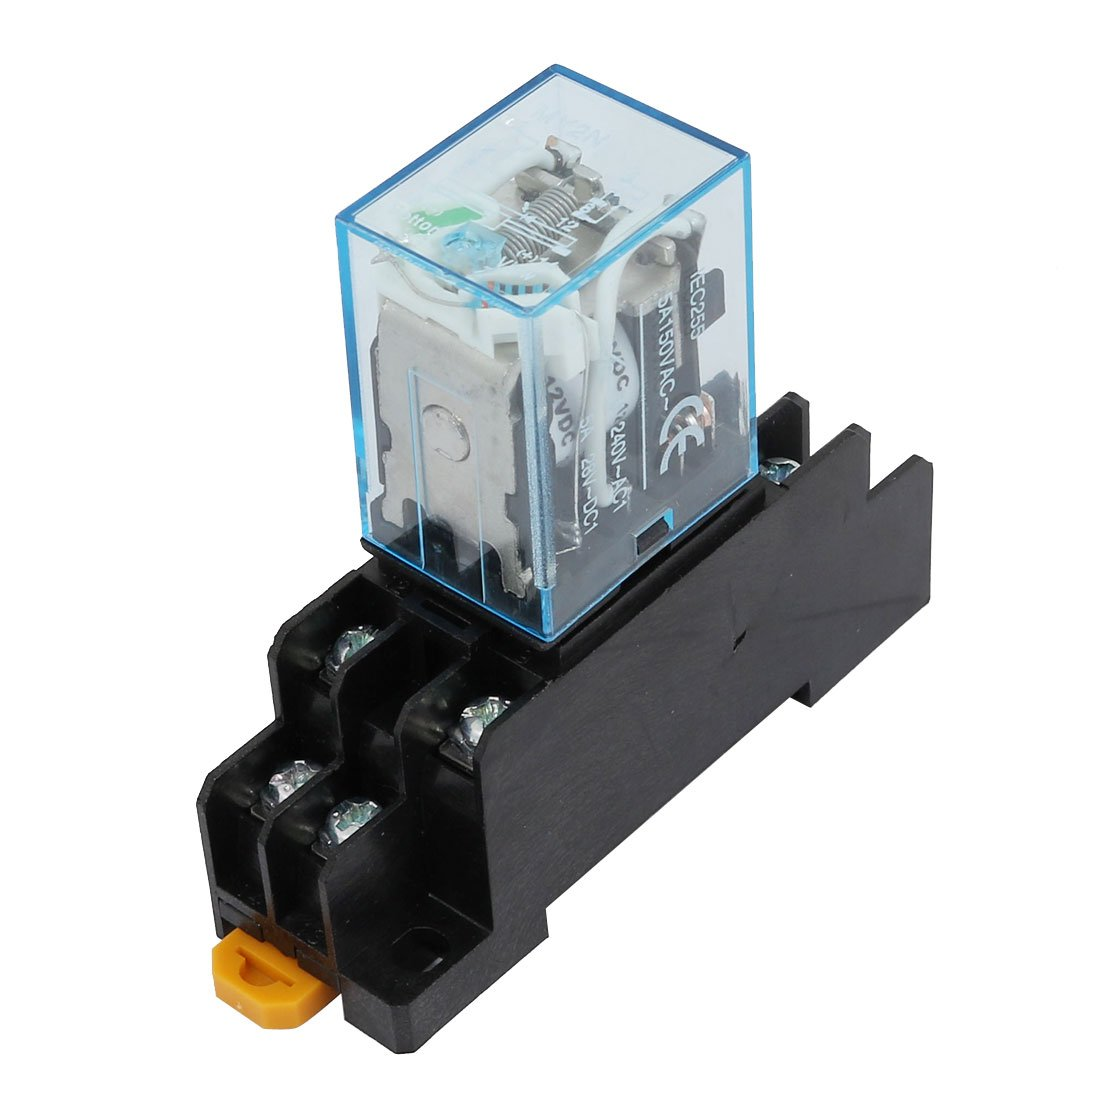 dc 12v relay amazon com low voltage lighting transformer bryant low voltage switches, relays